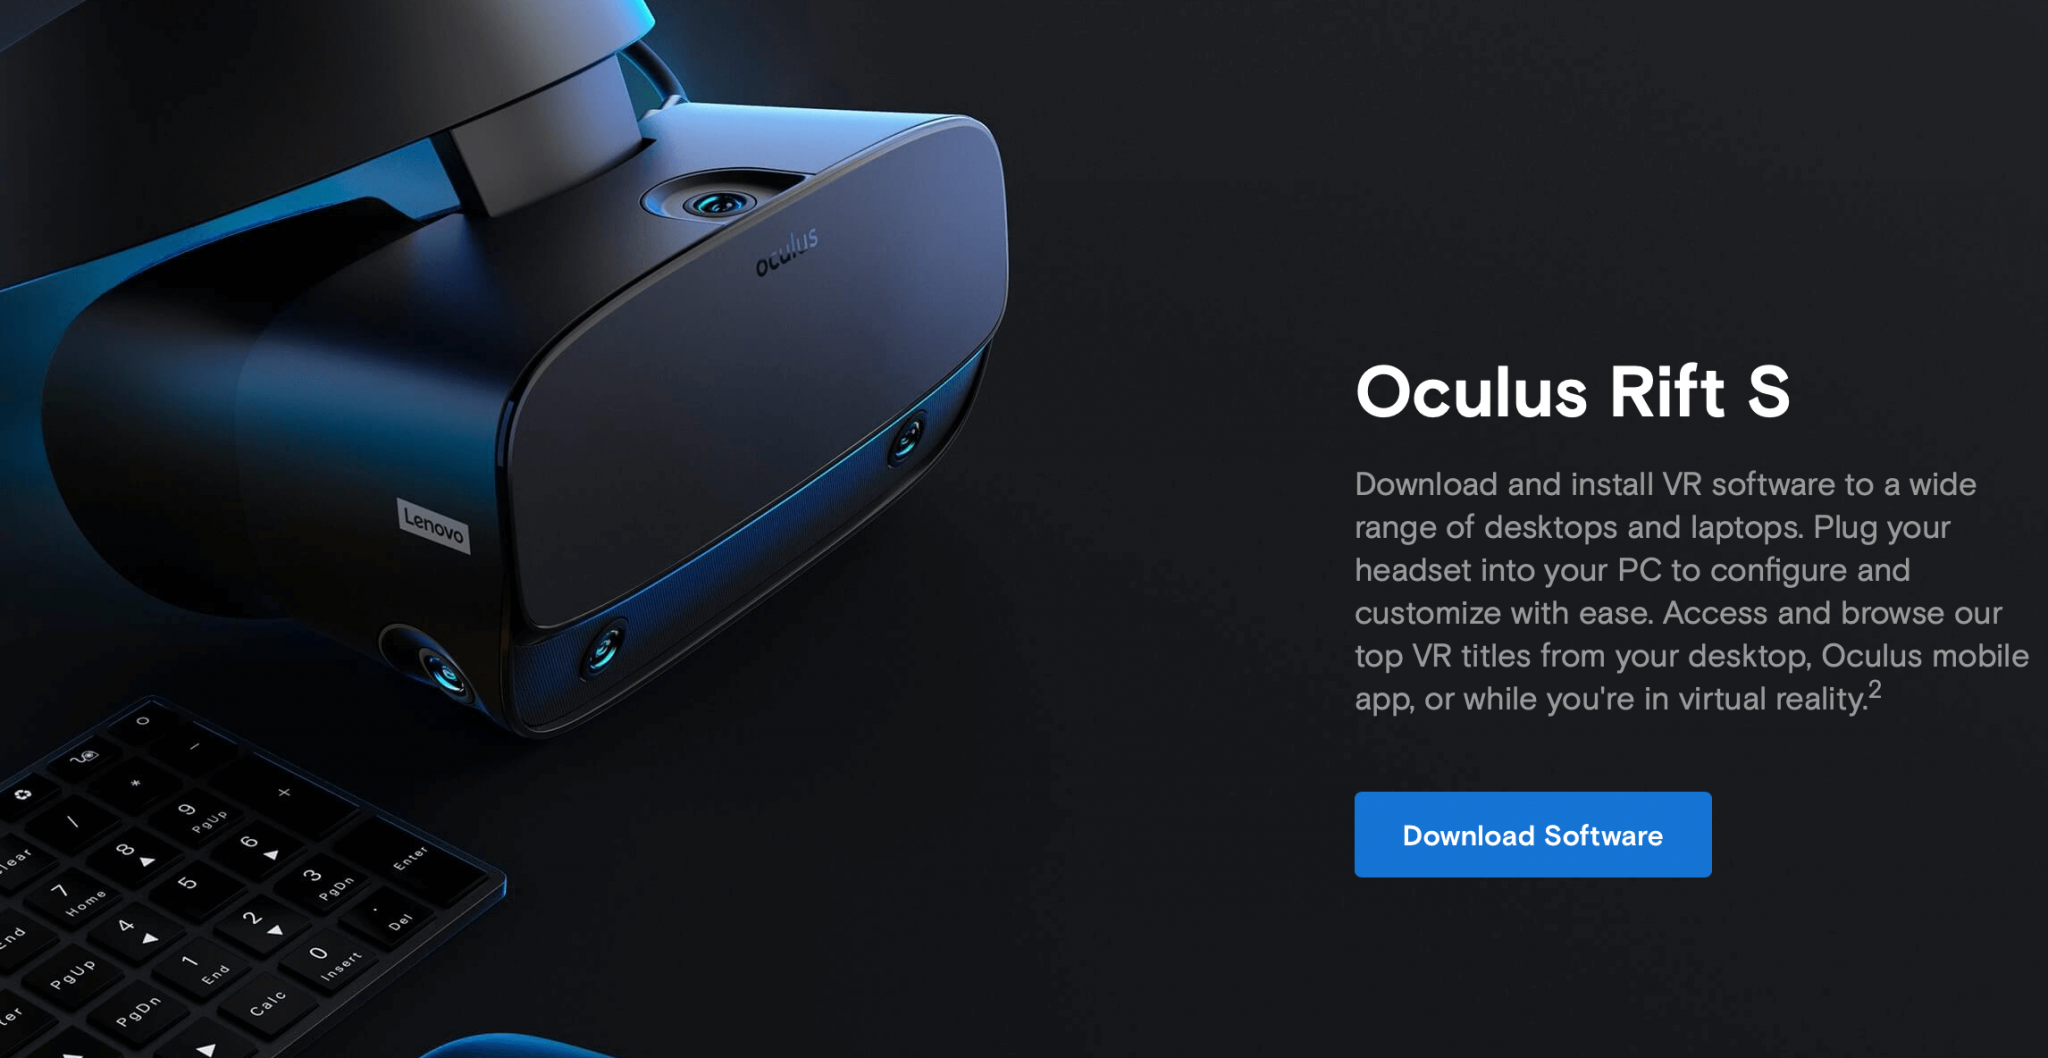 01 - download oculus software